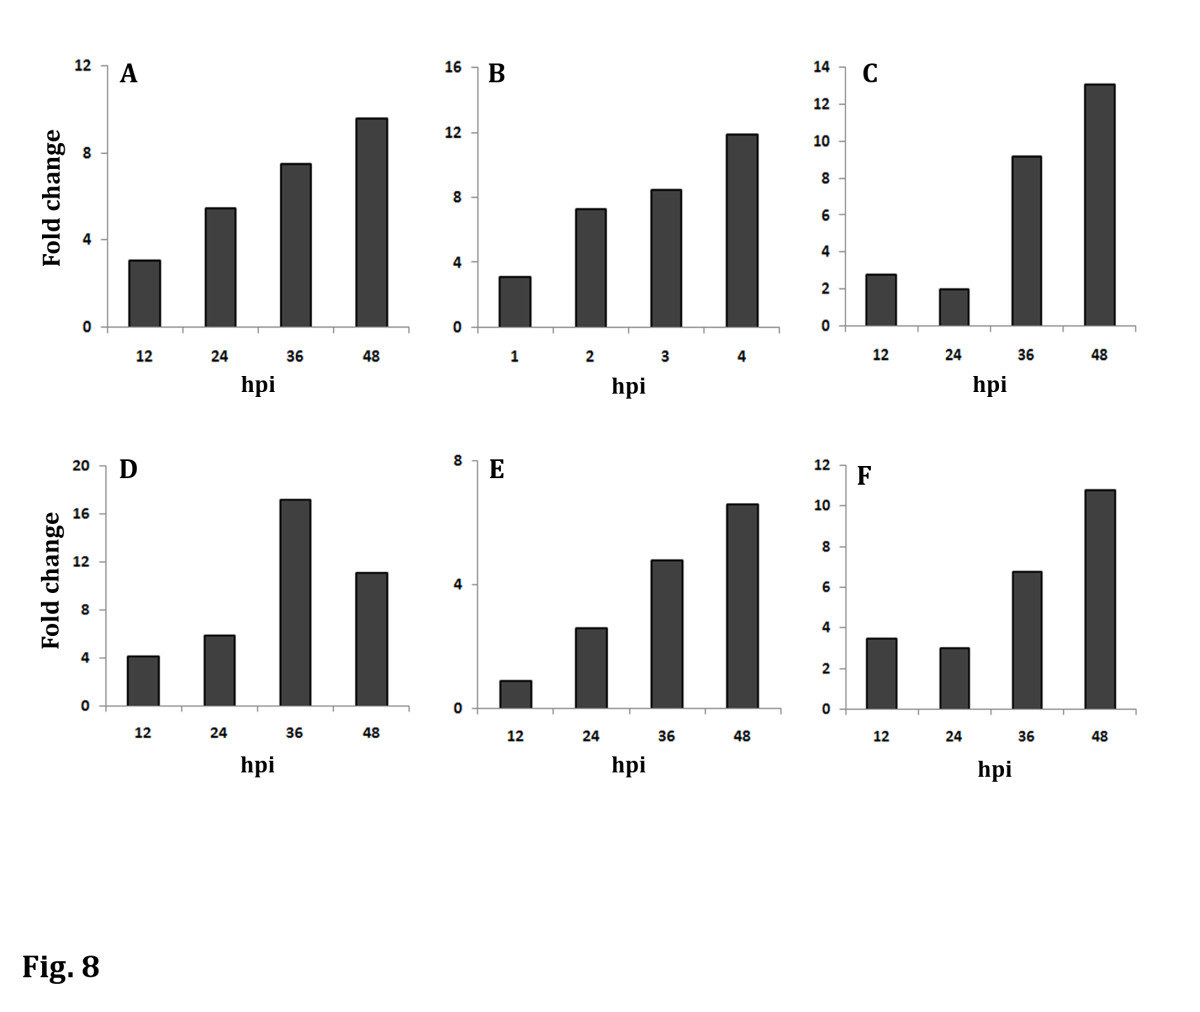 http://static-content.springer.com/image/art%3A10.1186%2F1477-5956-11-15/MediaObjects/12953_2012_Article_425_Fig8_HTML.jpg